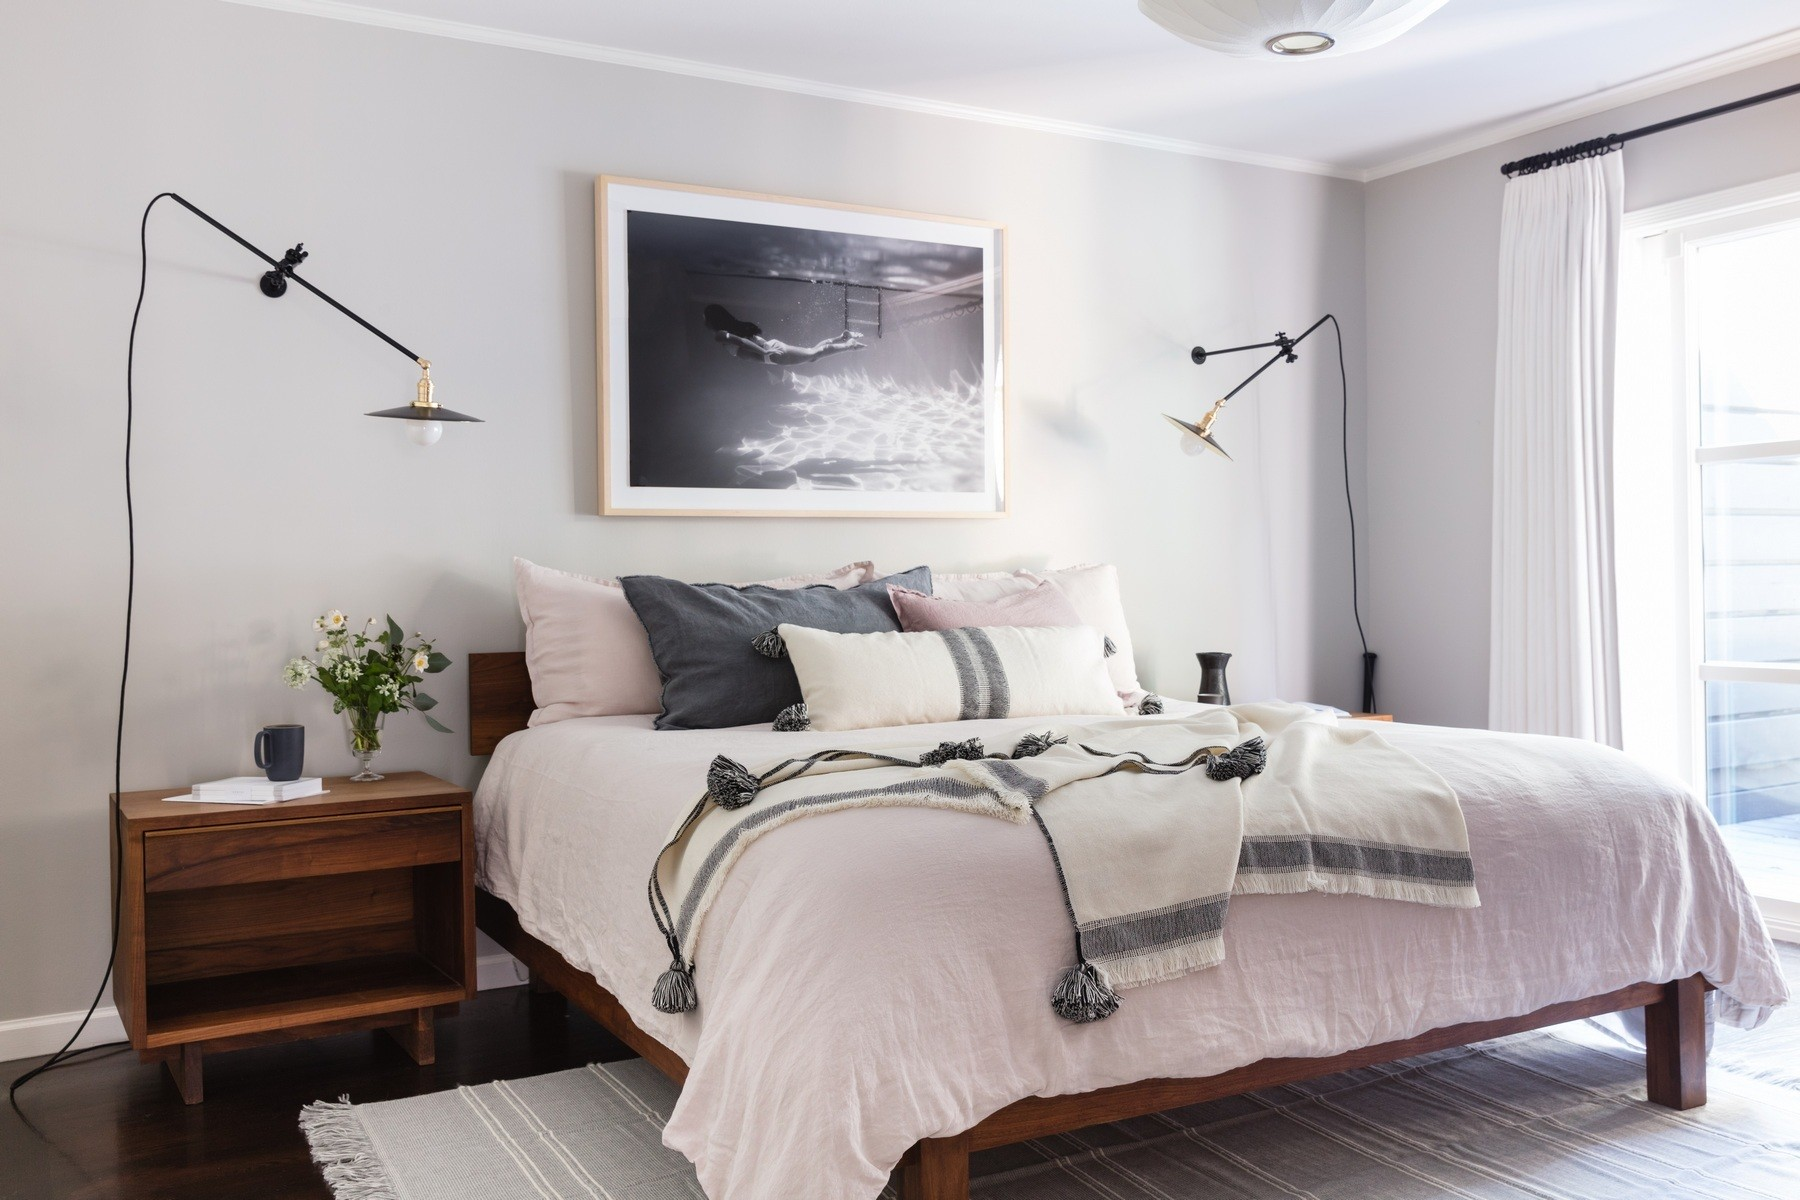 Bedroom Ideas For A Relaxing And Tranquil Space - Bedroom Decor